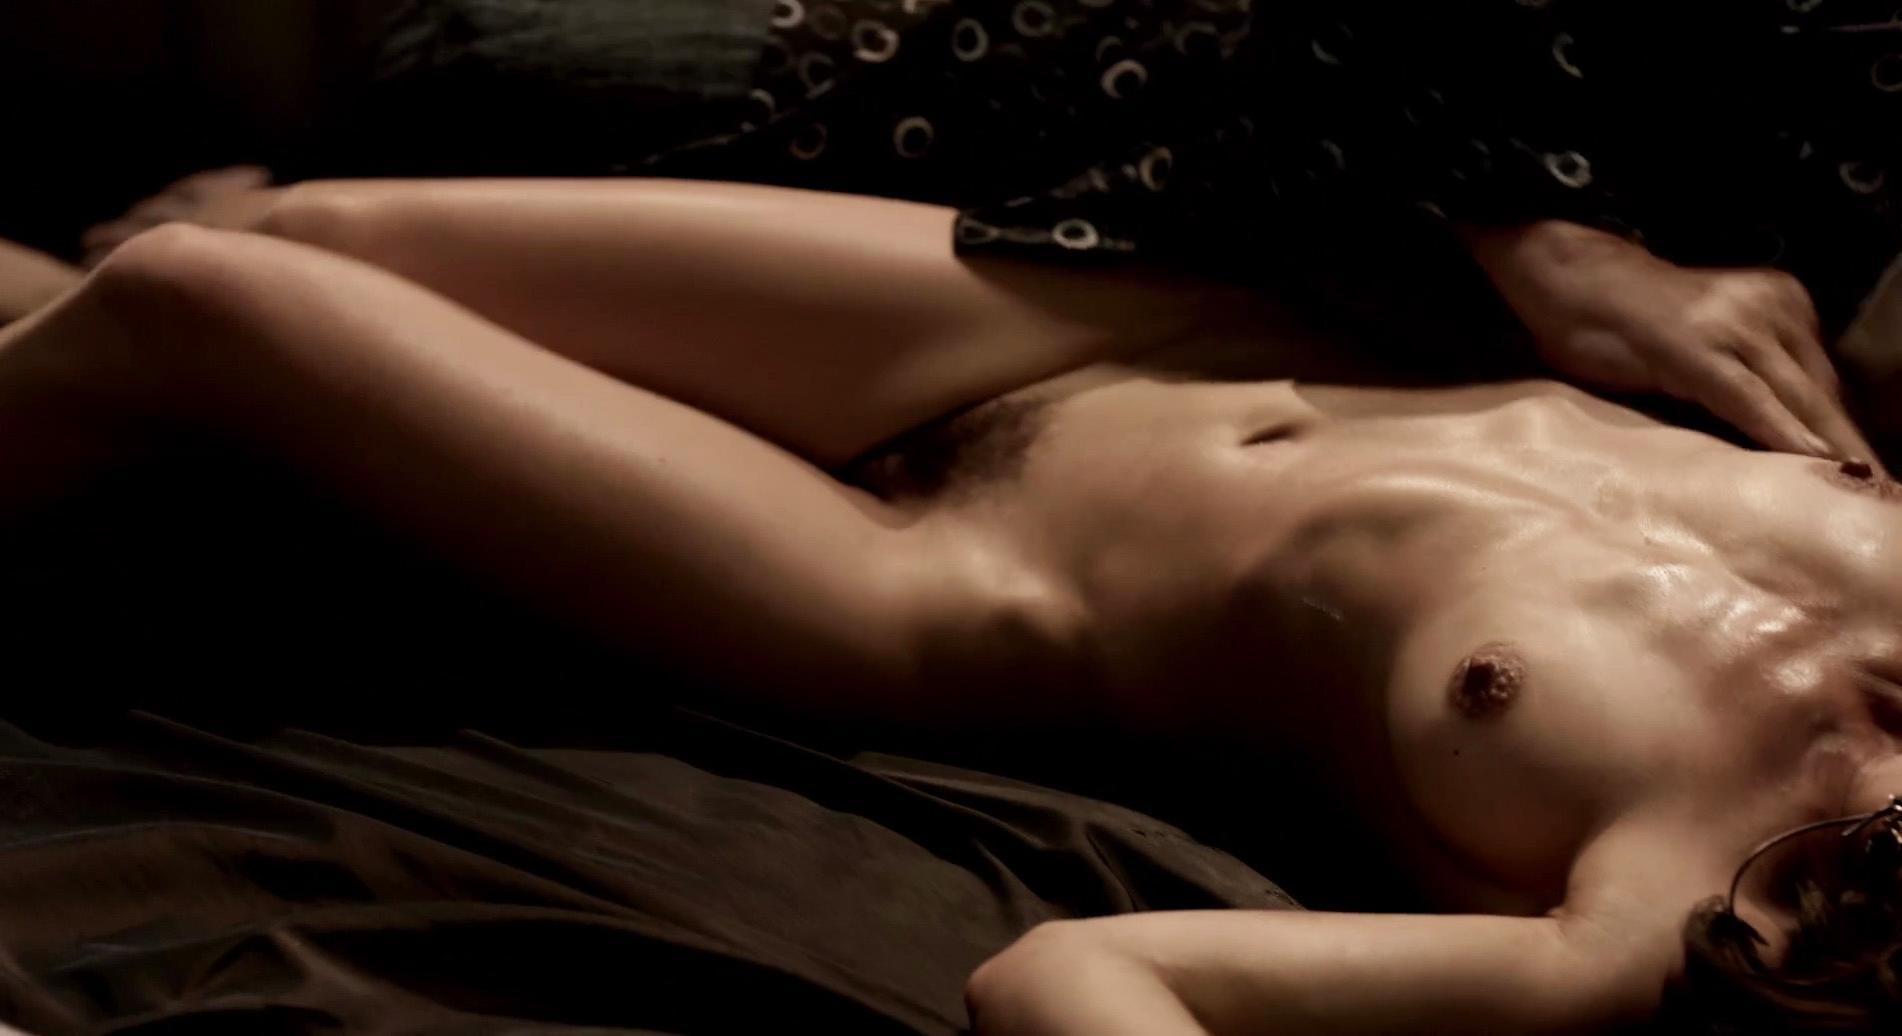 Manuela Martelli nude - The Future (2013)